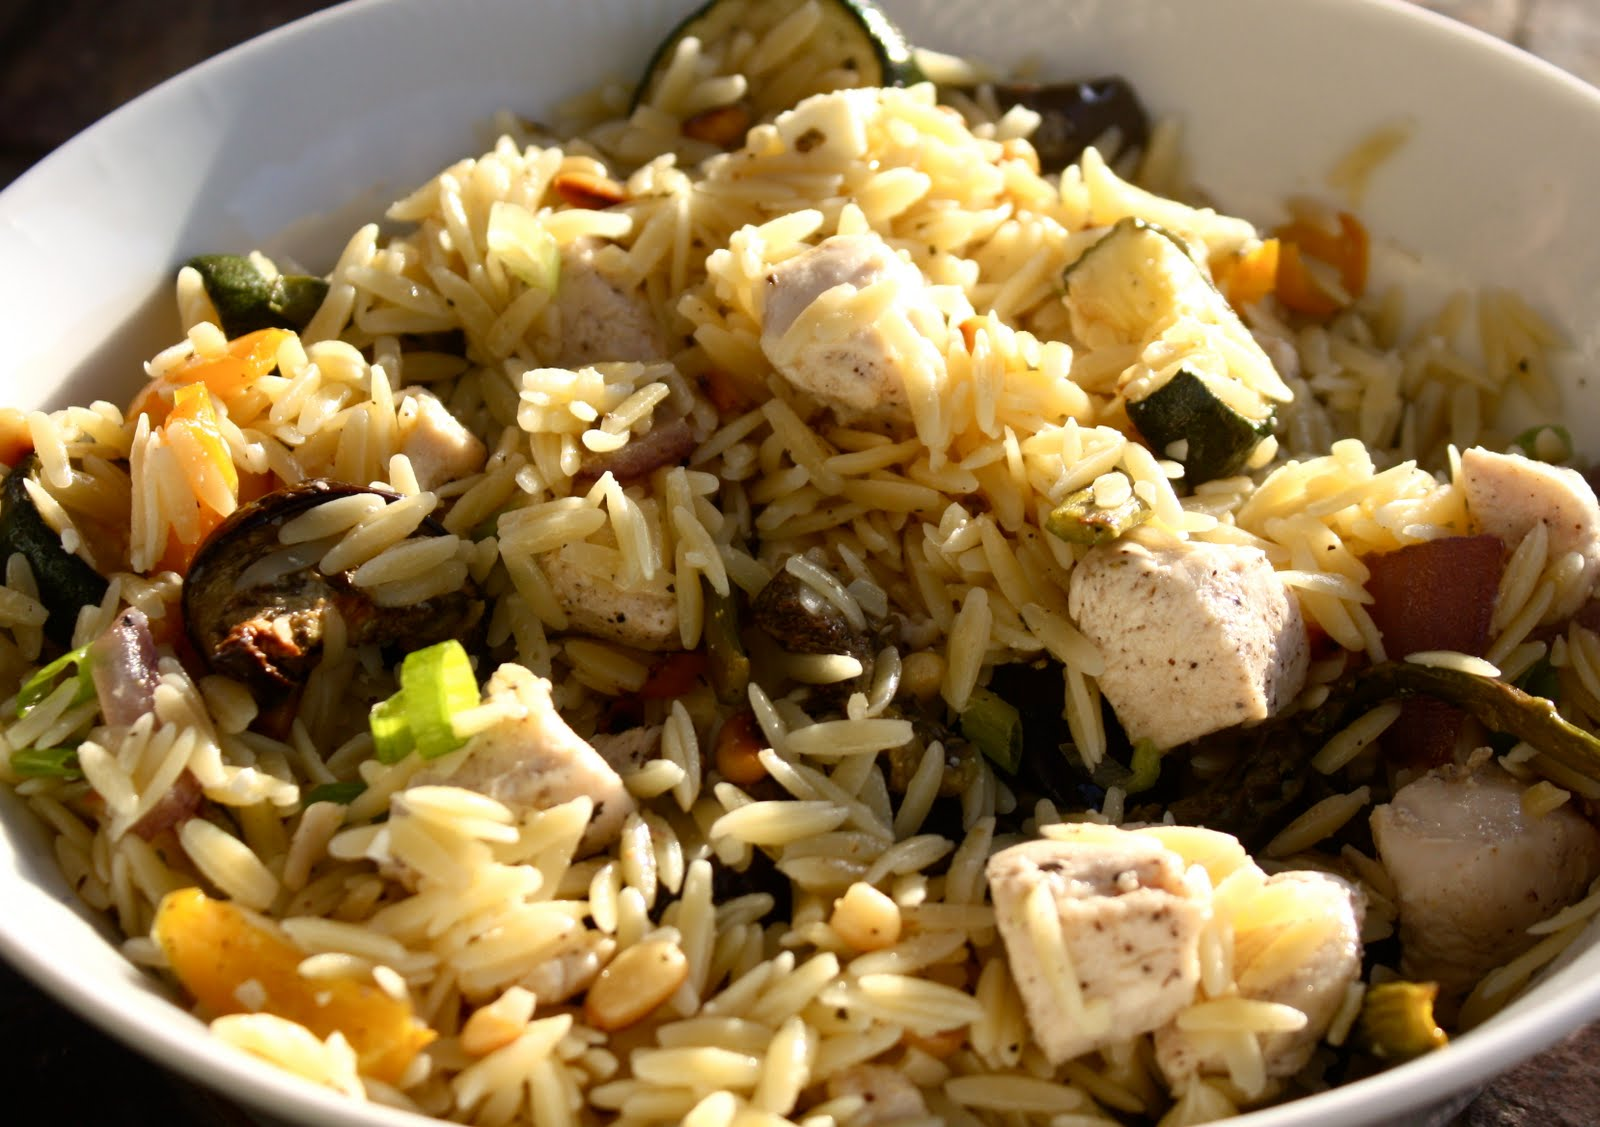 Peachtree Cooking: Orzo with Roasted Vegetables